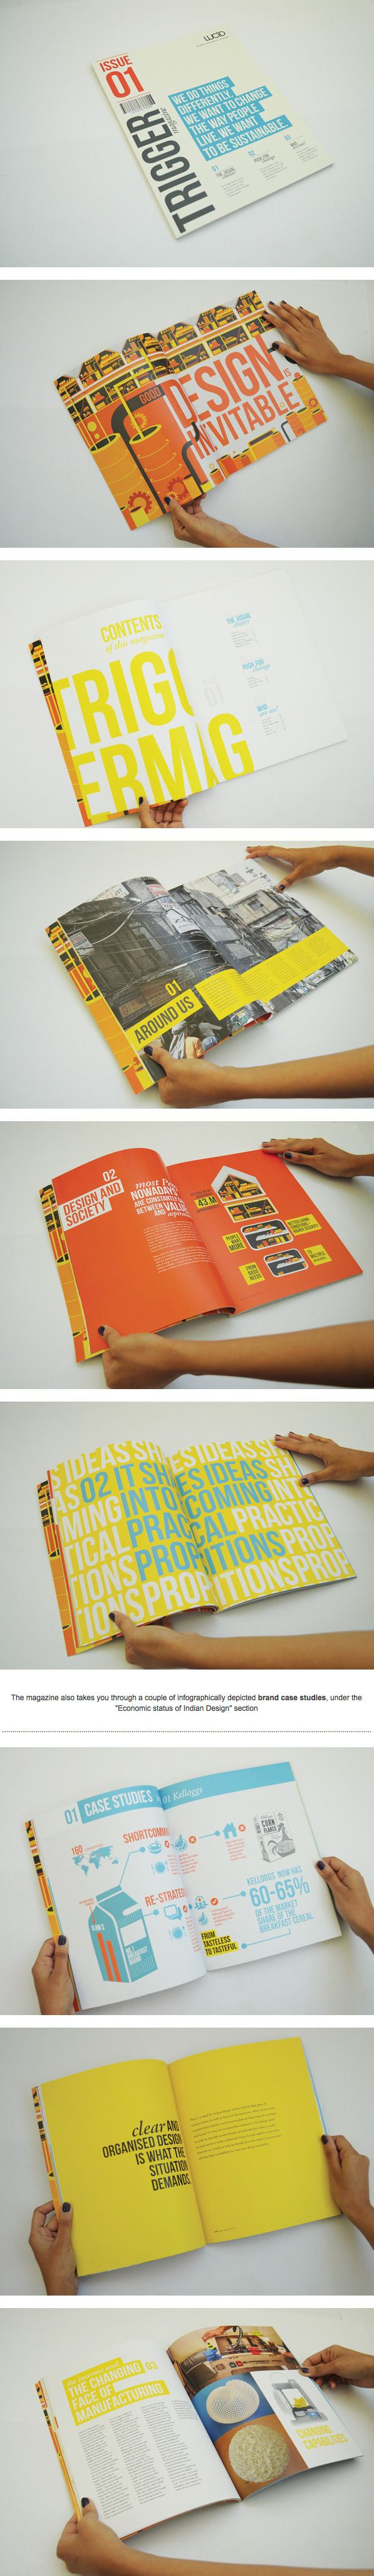 Layout / colors #design #book #graphicdesign